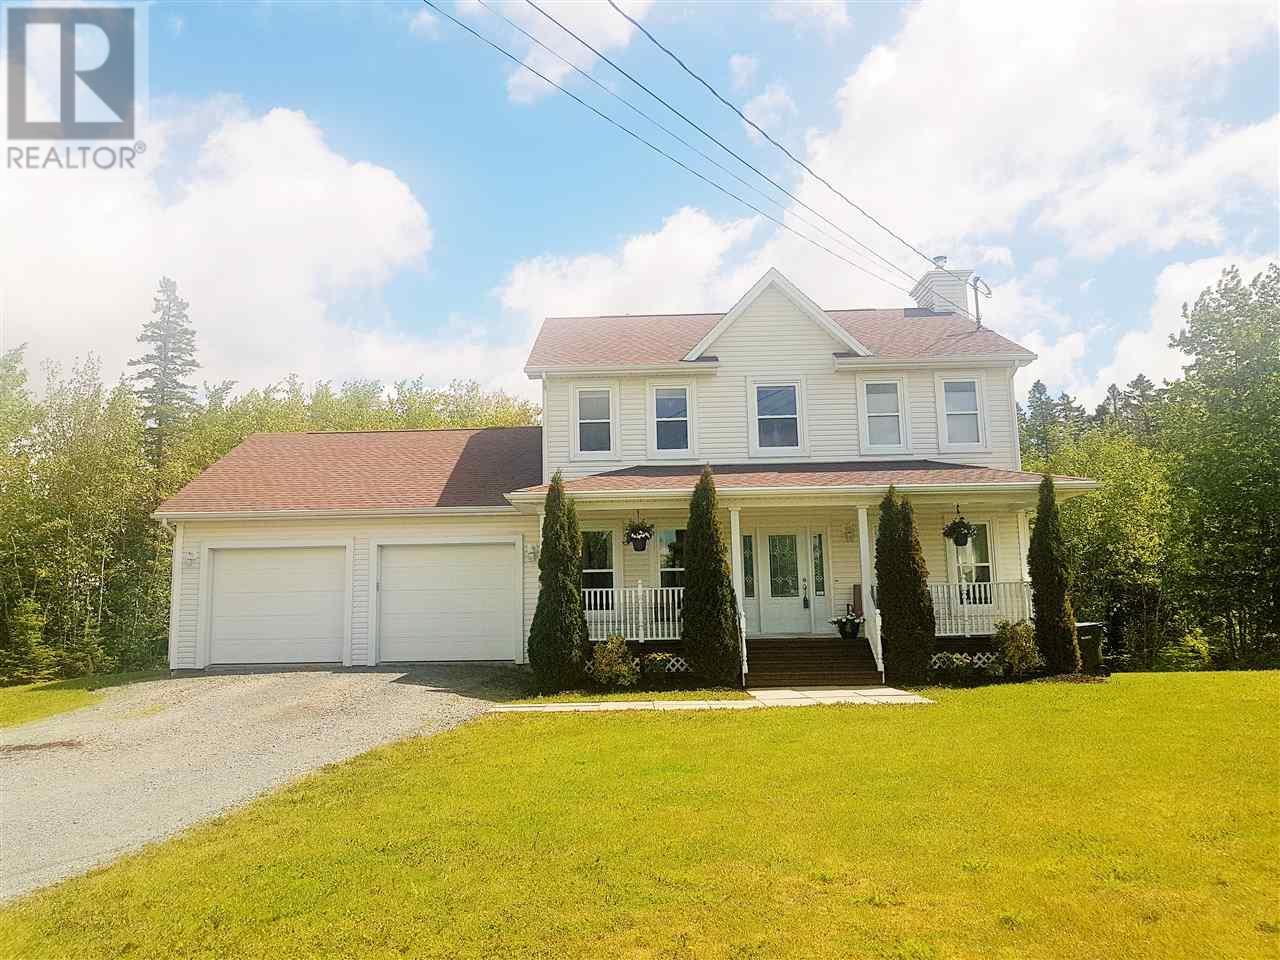 Removed: 72 Elmwood Drive, Elmsdale, NS - Removed on 2018-12-15 04:18:02